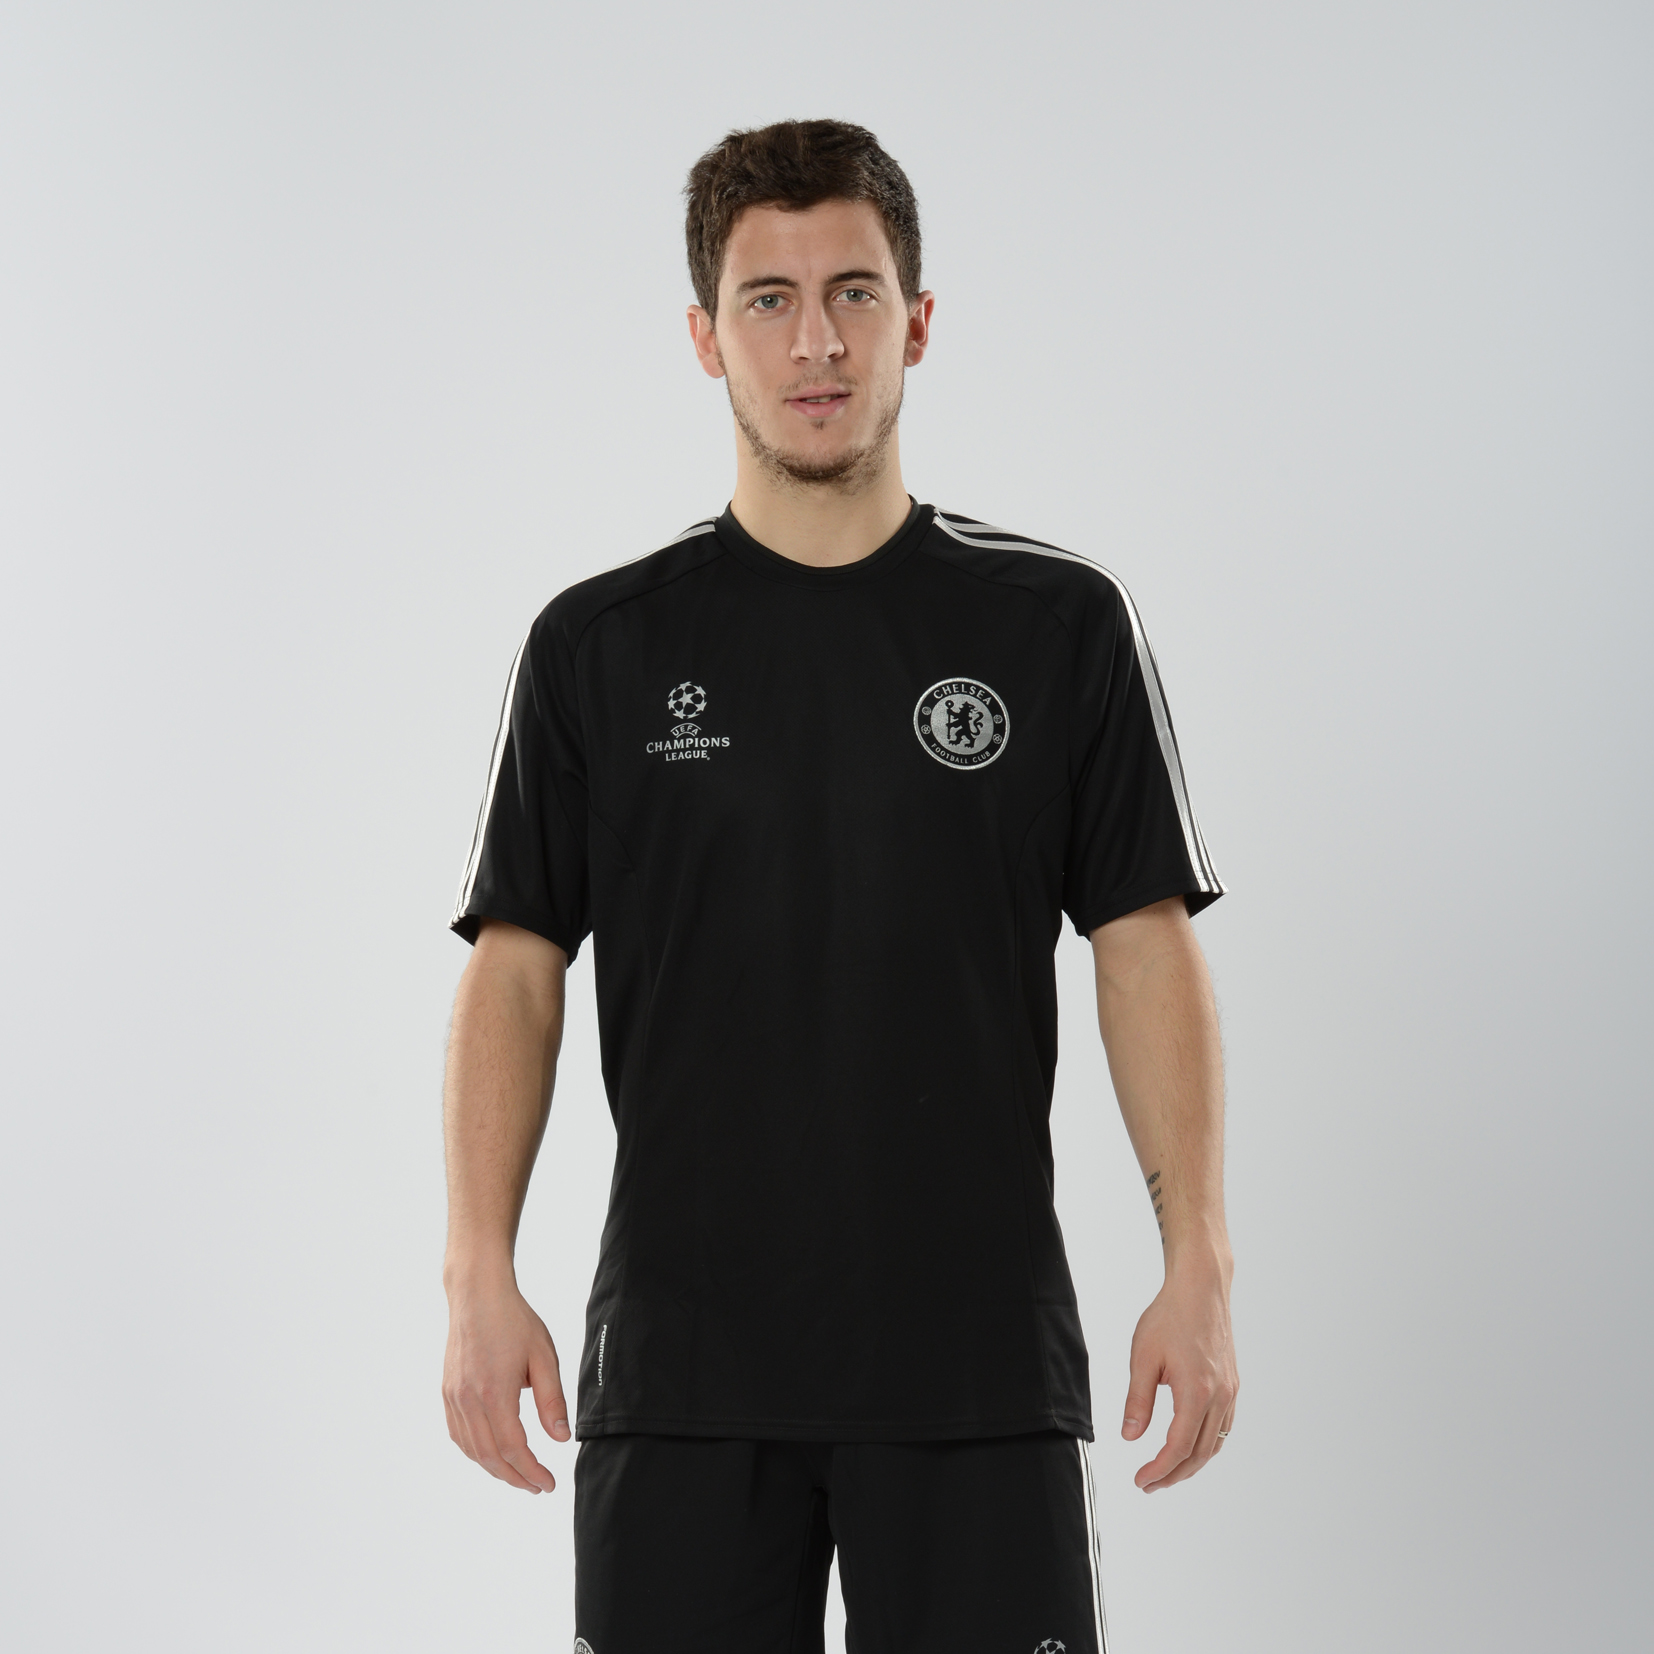 Chelsea UCL Training Jersey Black